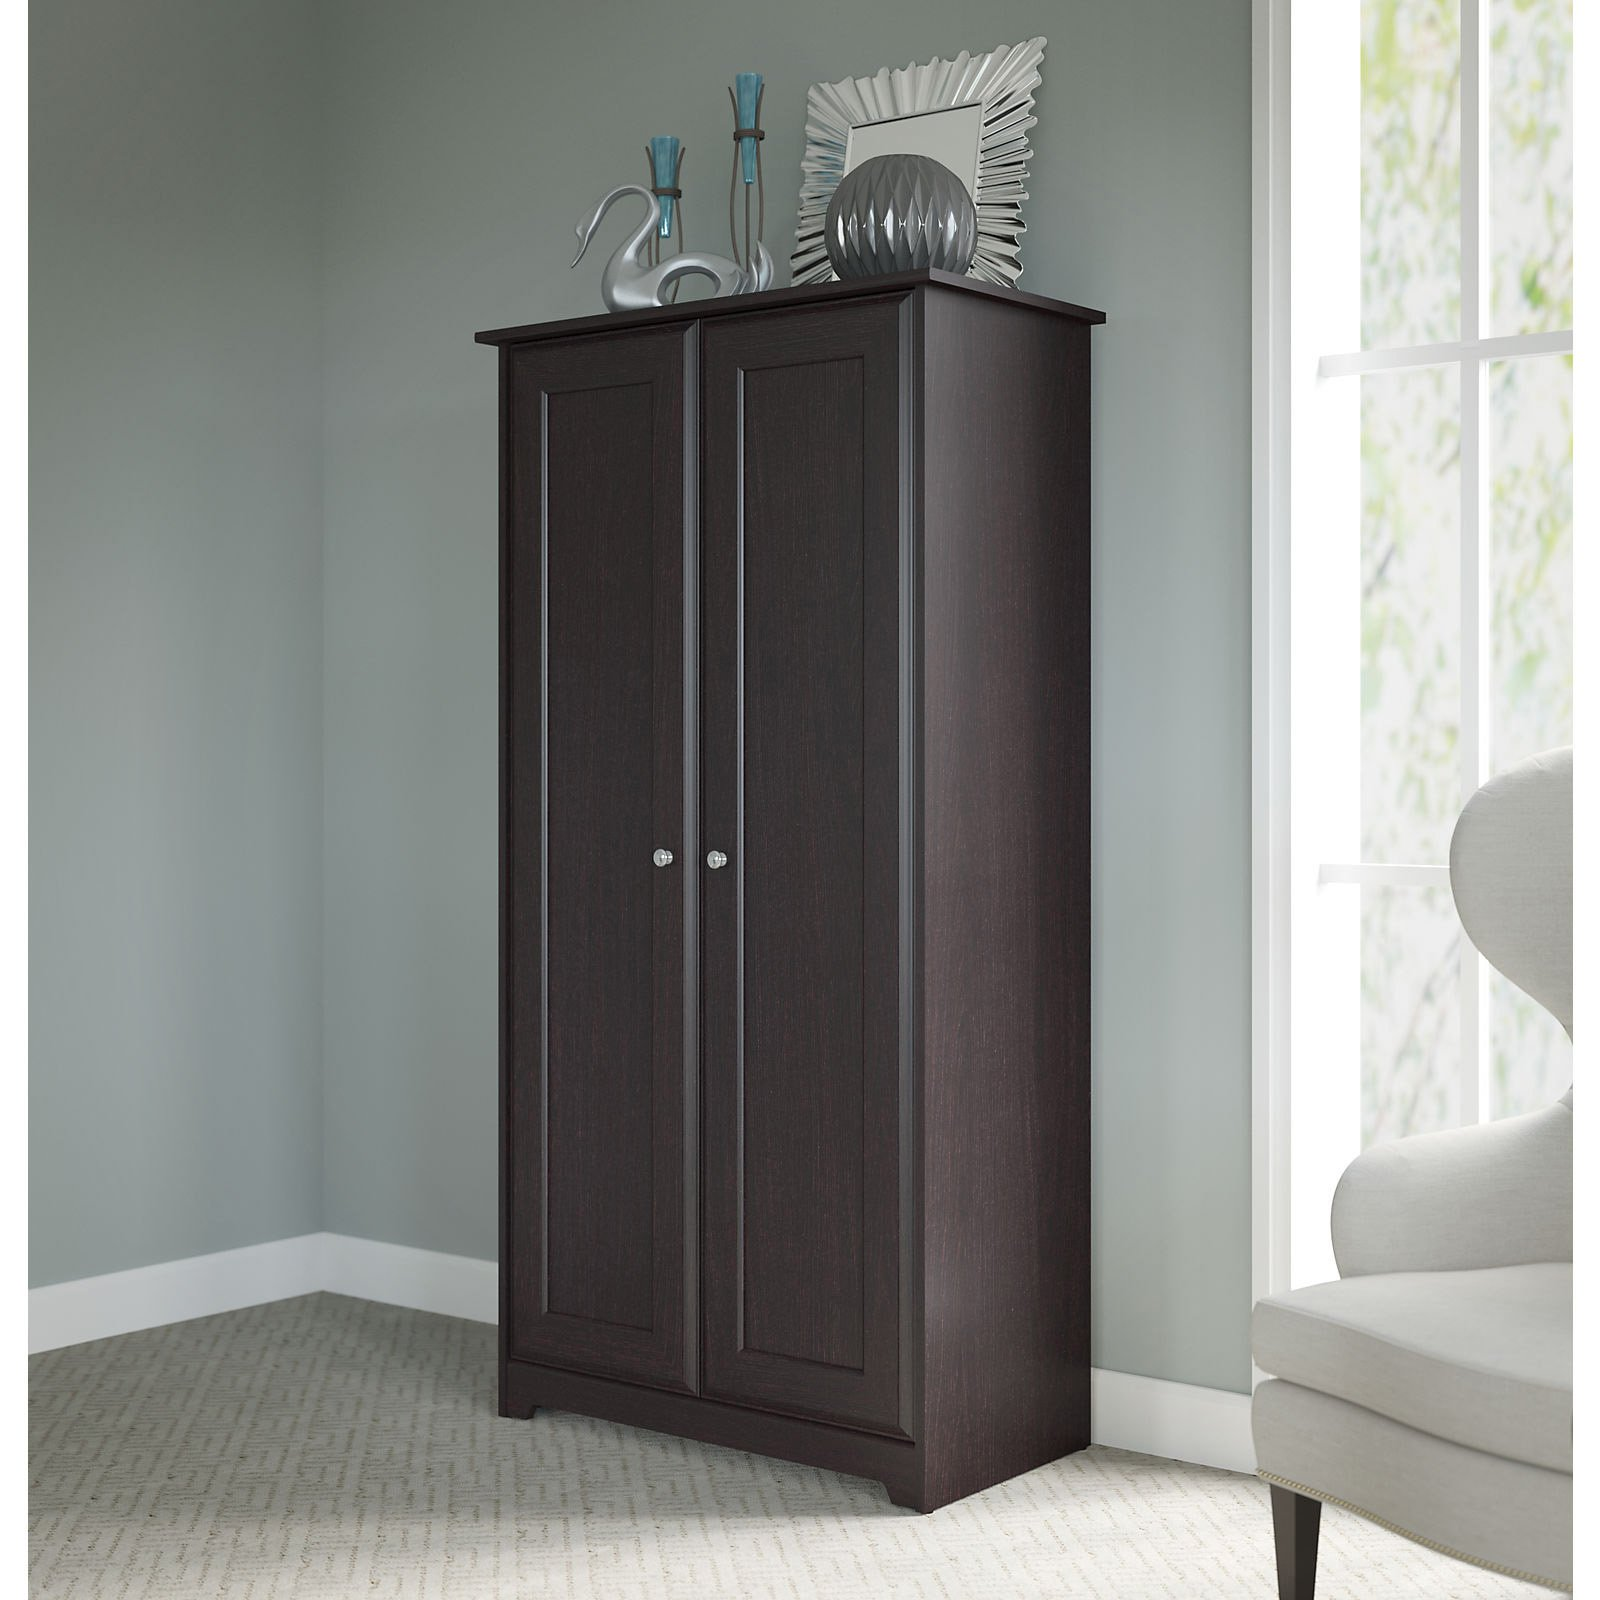 Awesome Cabinet With Doors Decoration Ideas